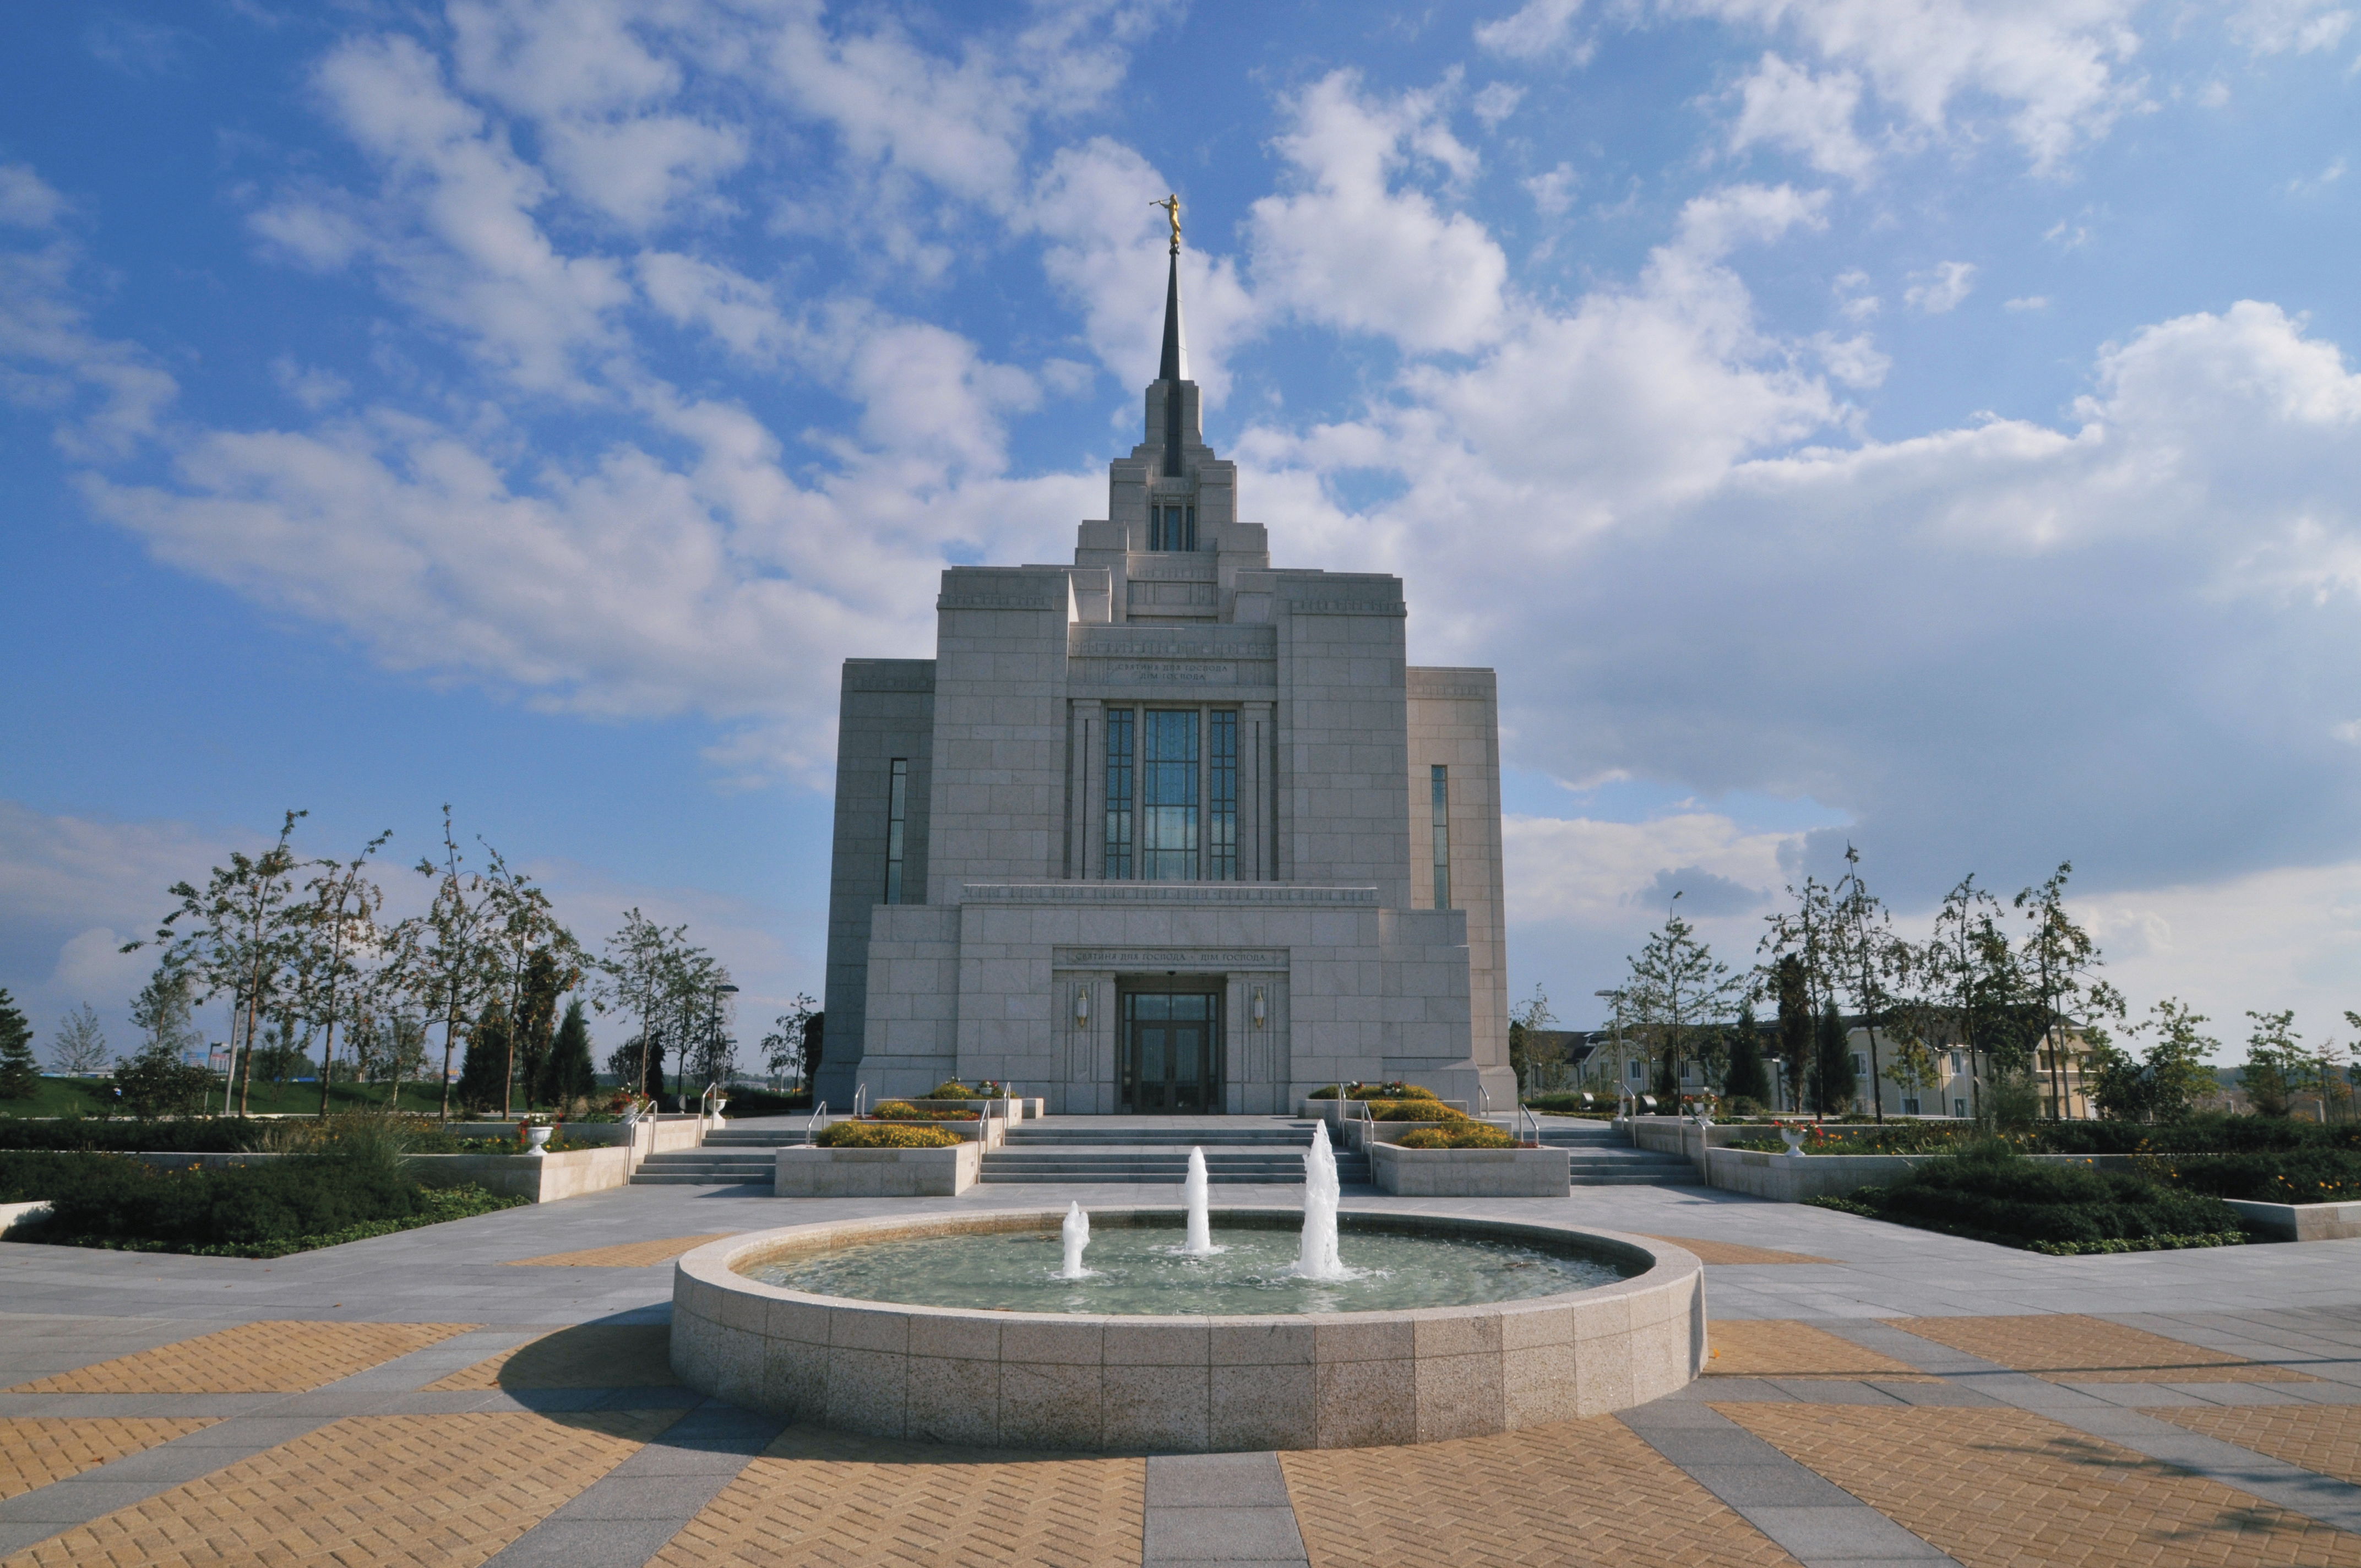 The entire Kyiv Ukraine Temple, including the fountain, entrance, and scenery.